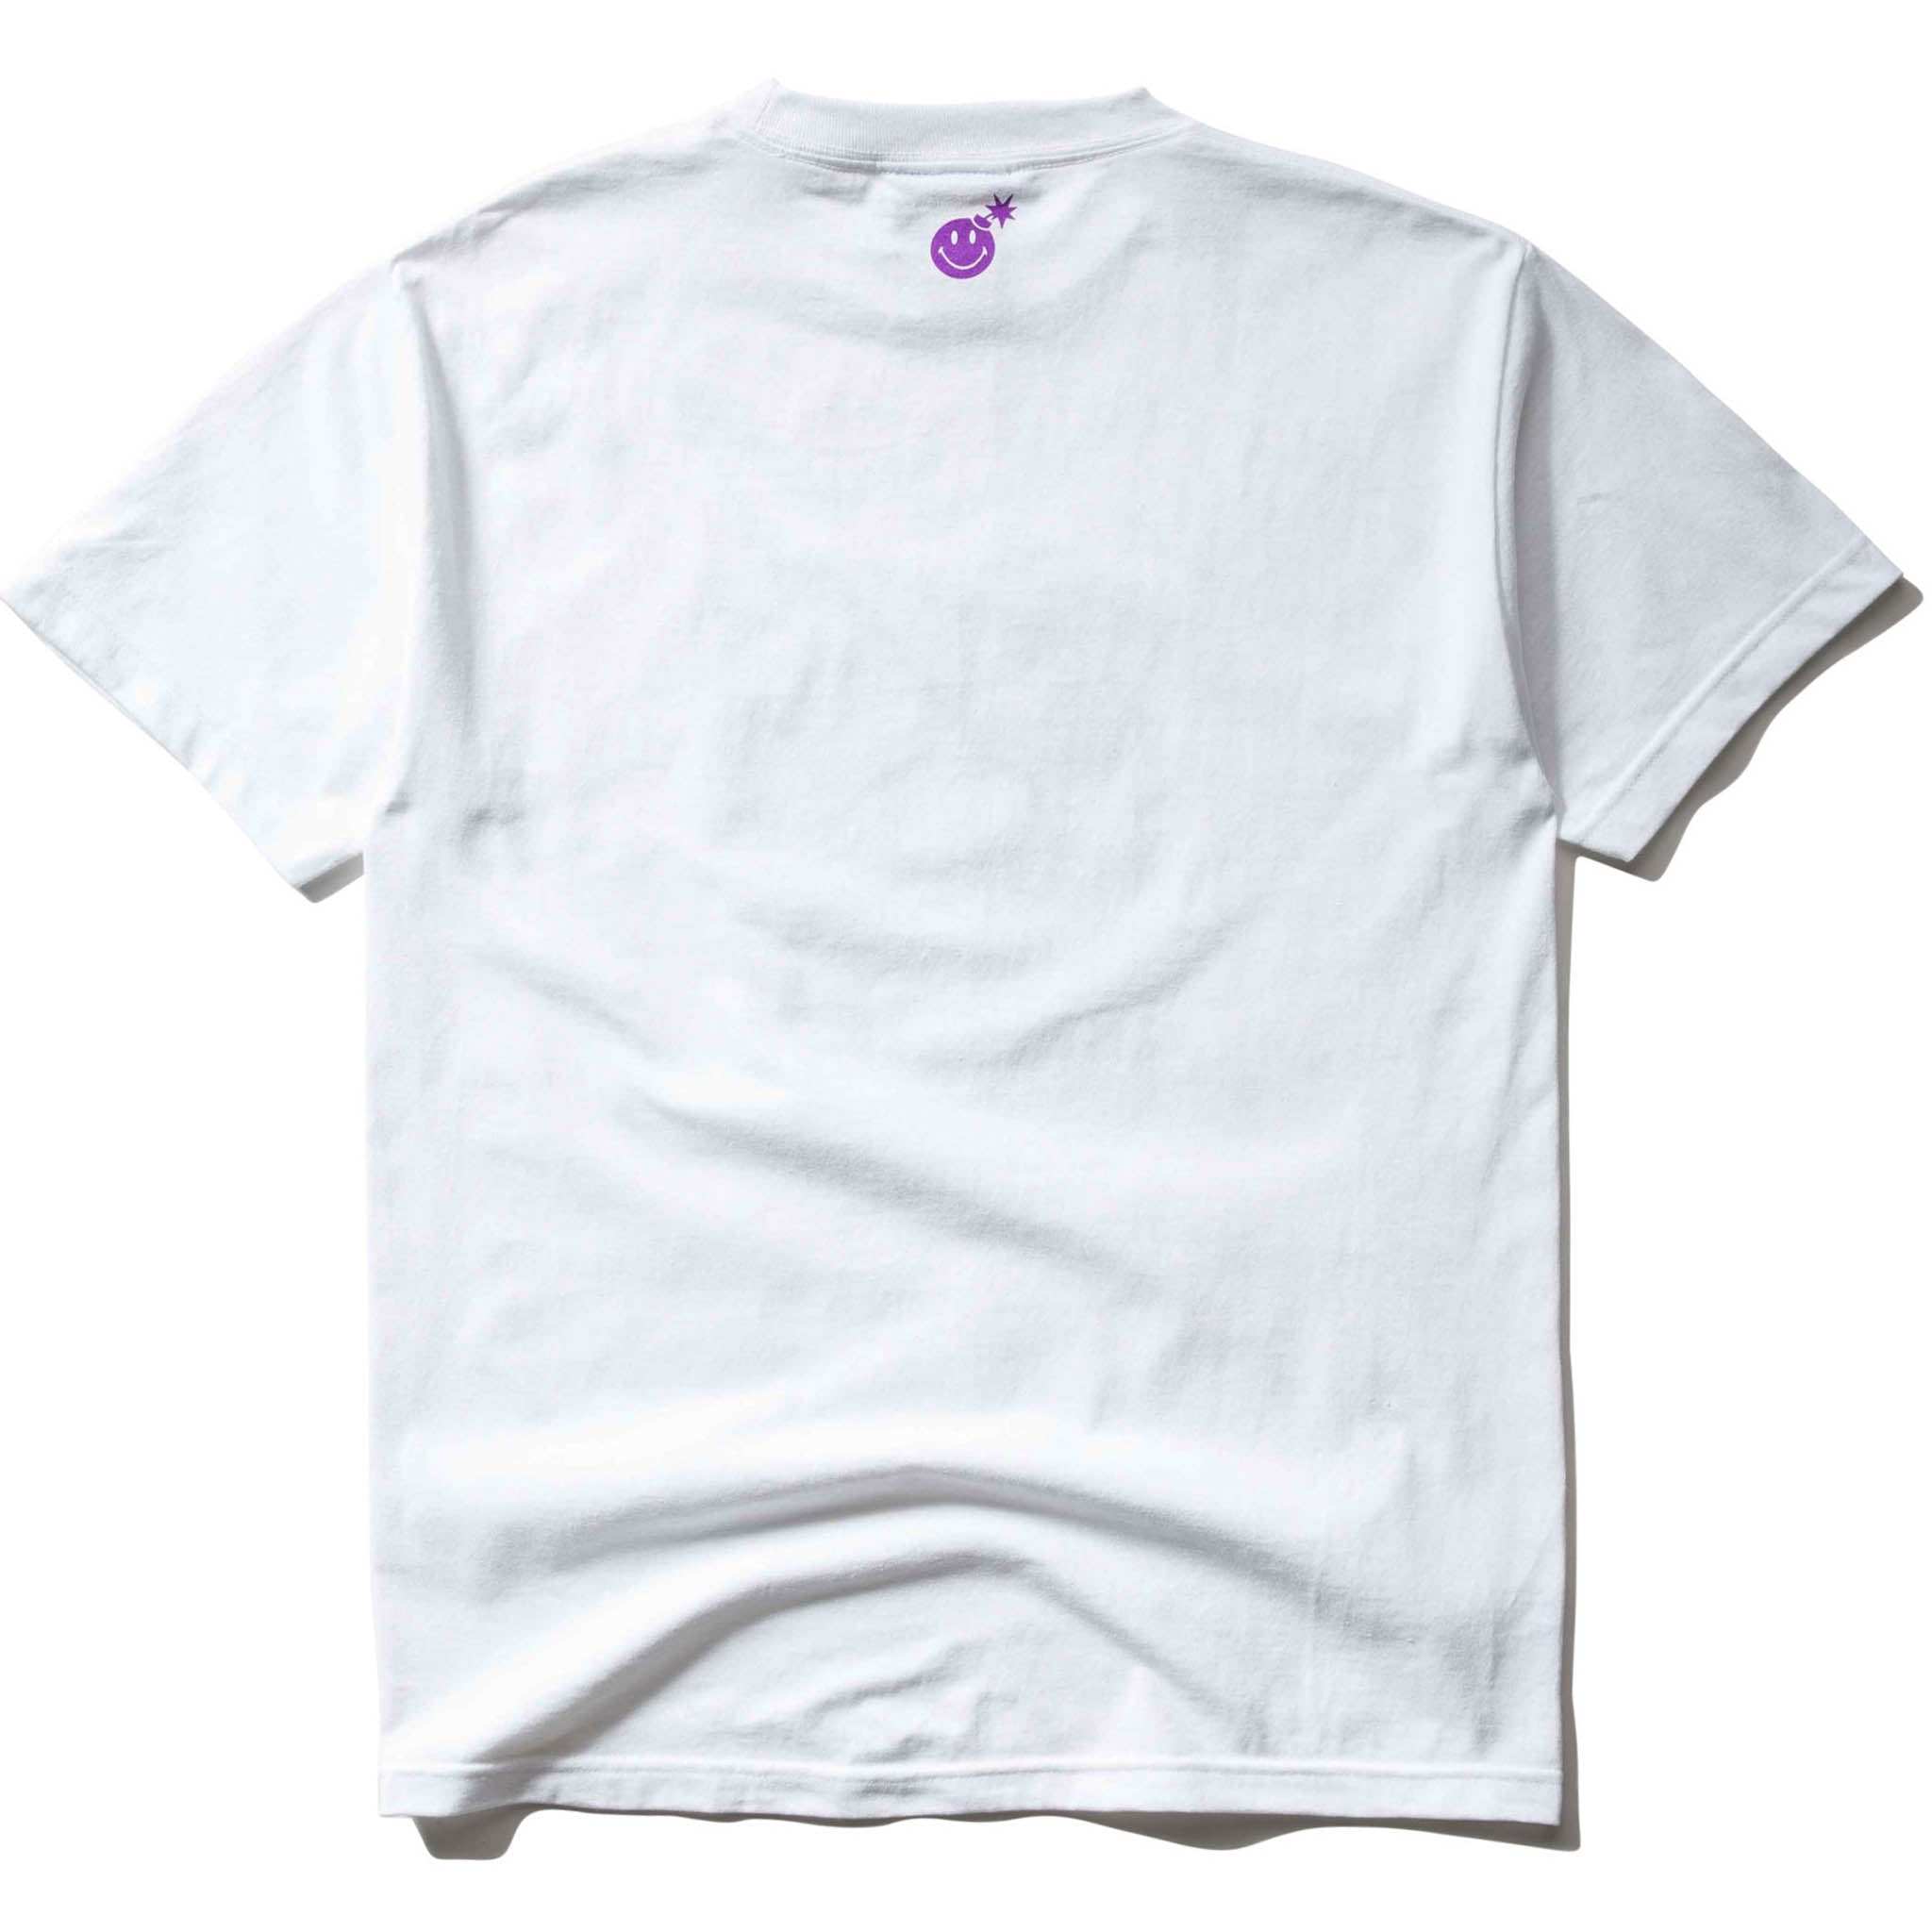 THE HUNDREDS x CTM CROSSOUT T-SHIRT (WHITE)